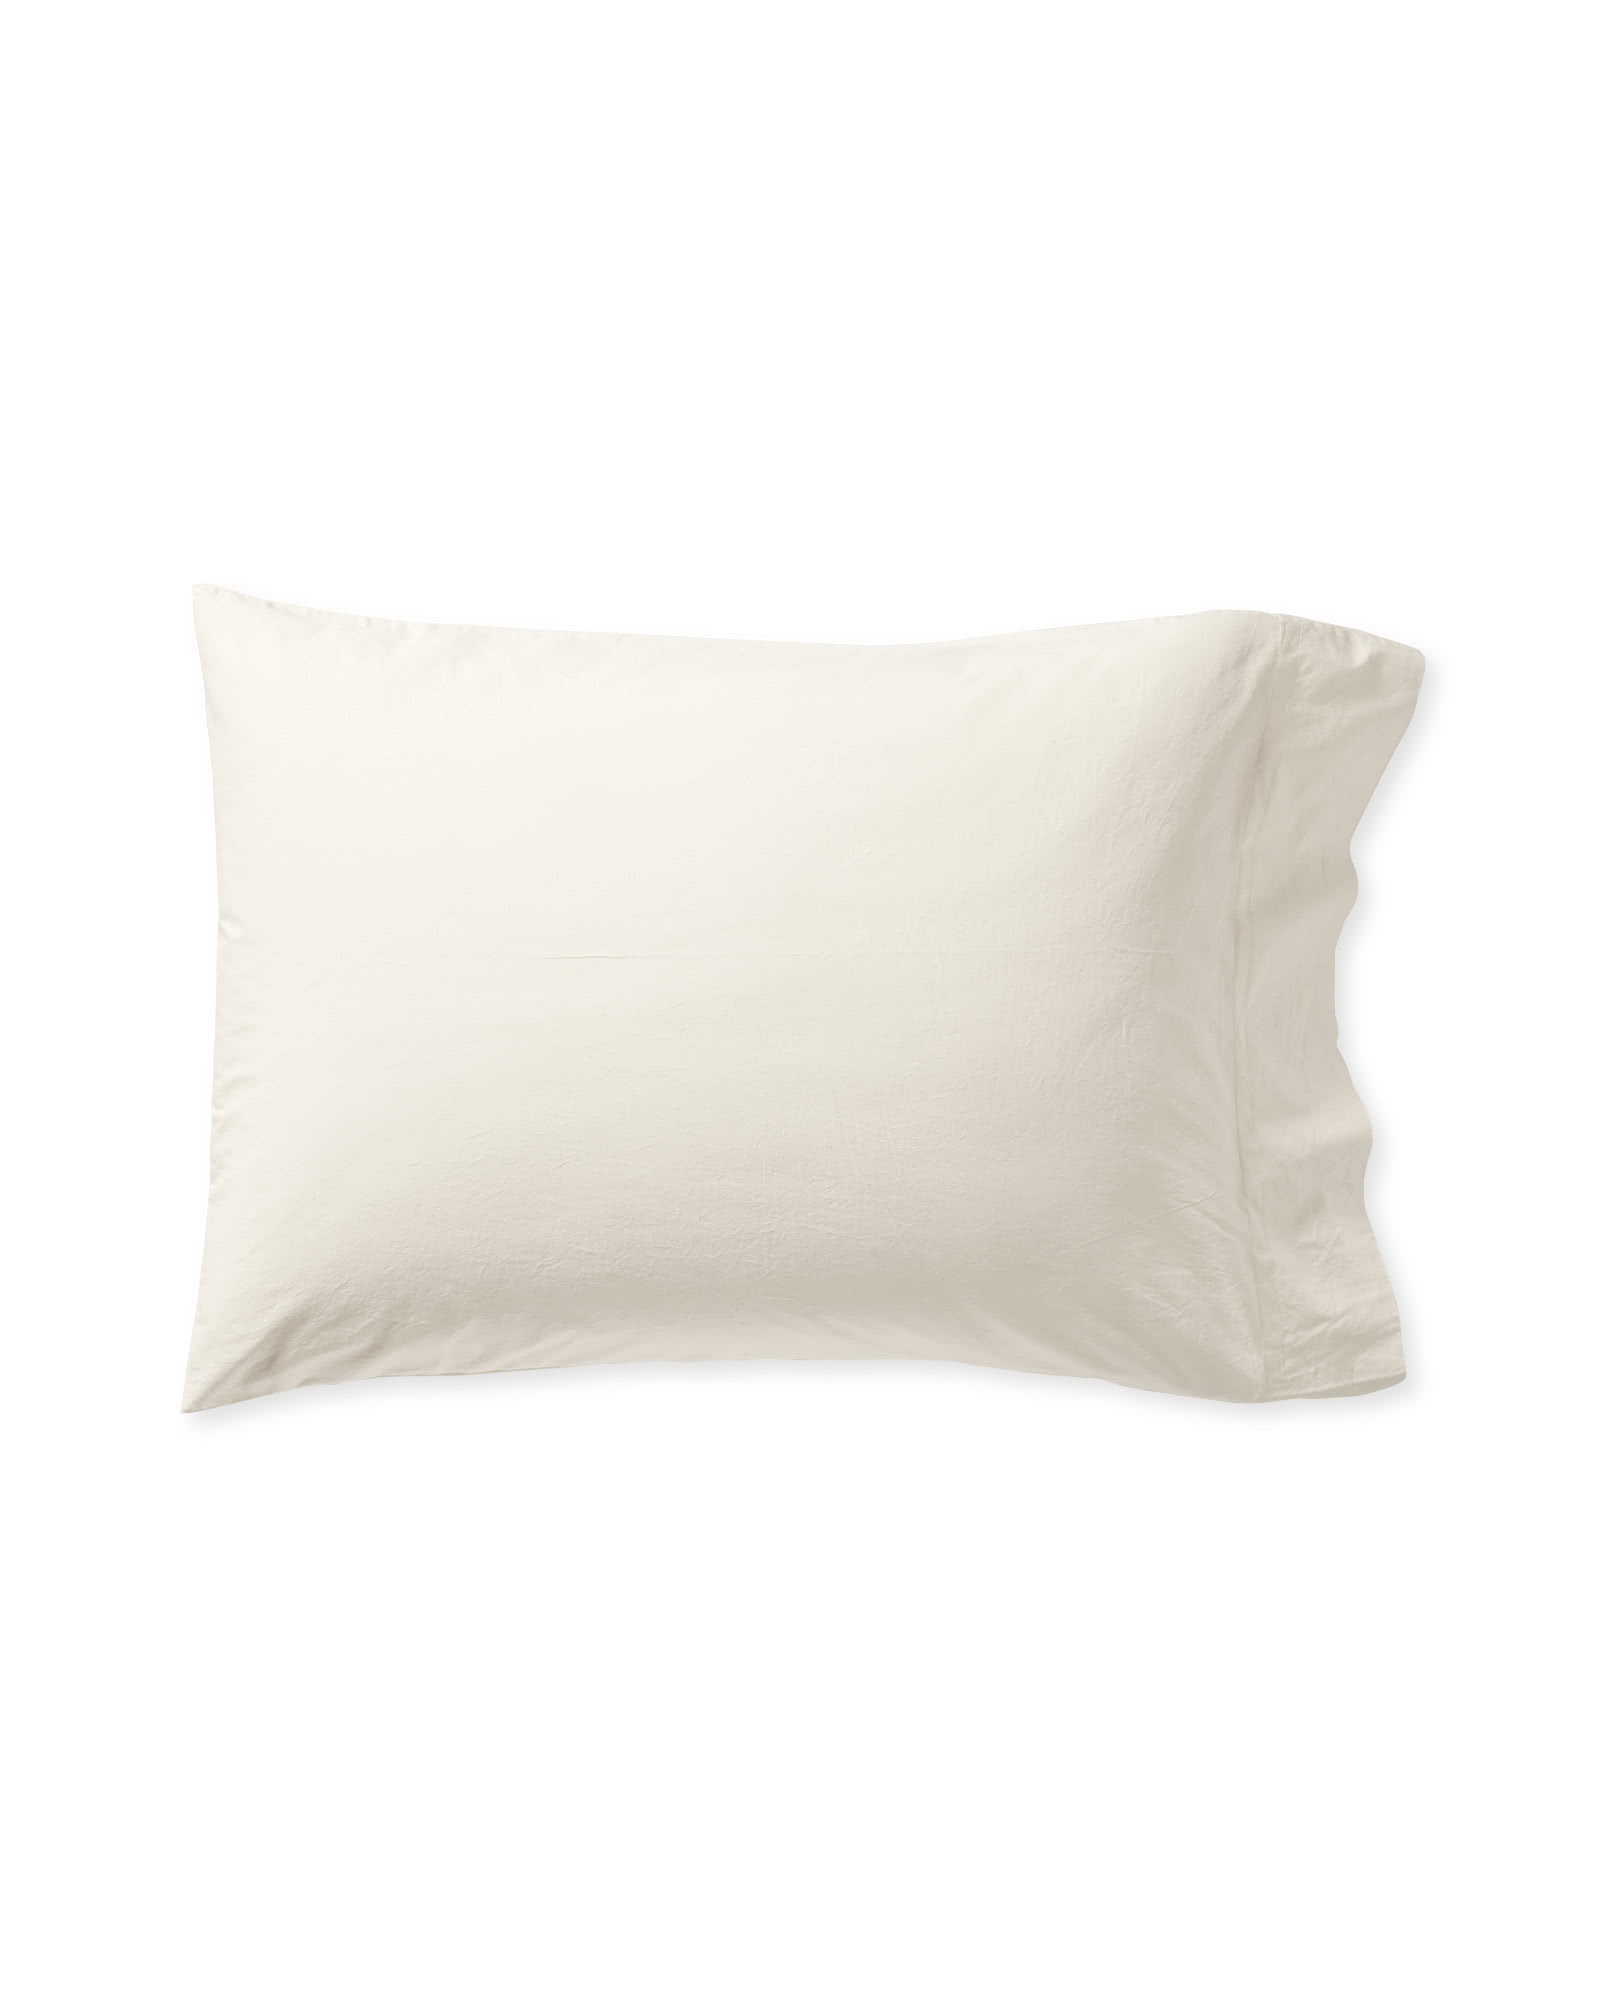 Portofino Pillowcases (Extra Set of 2), Ivory